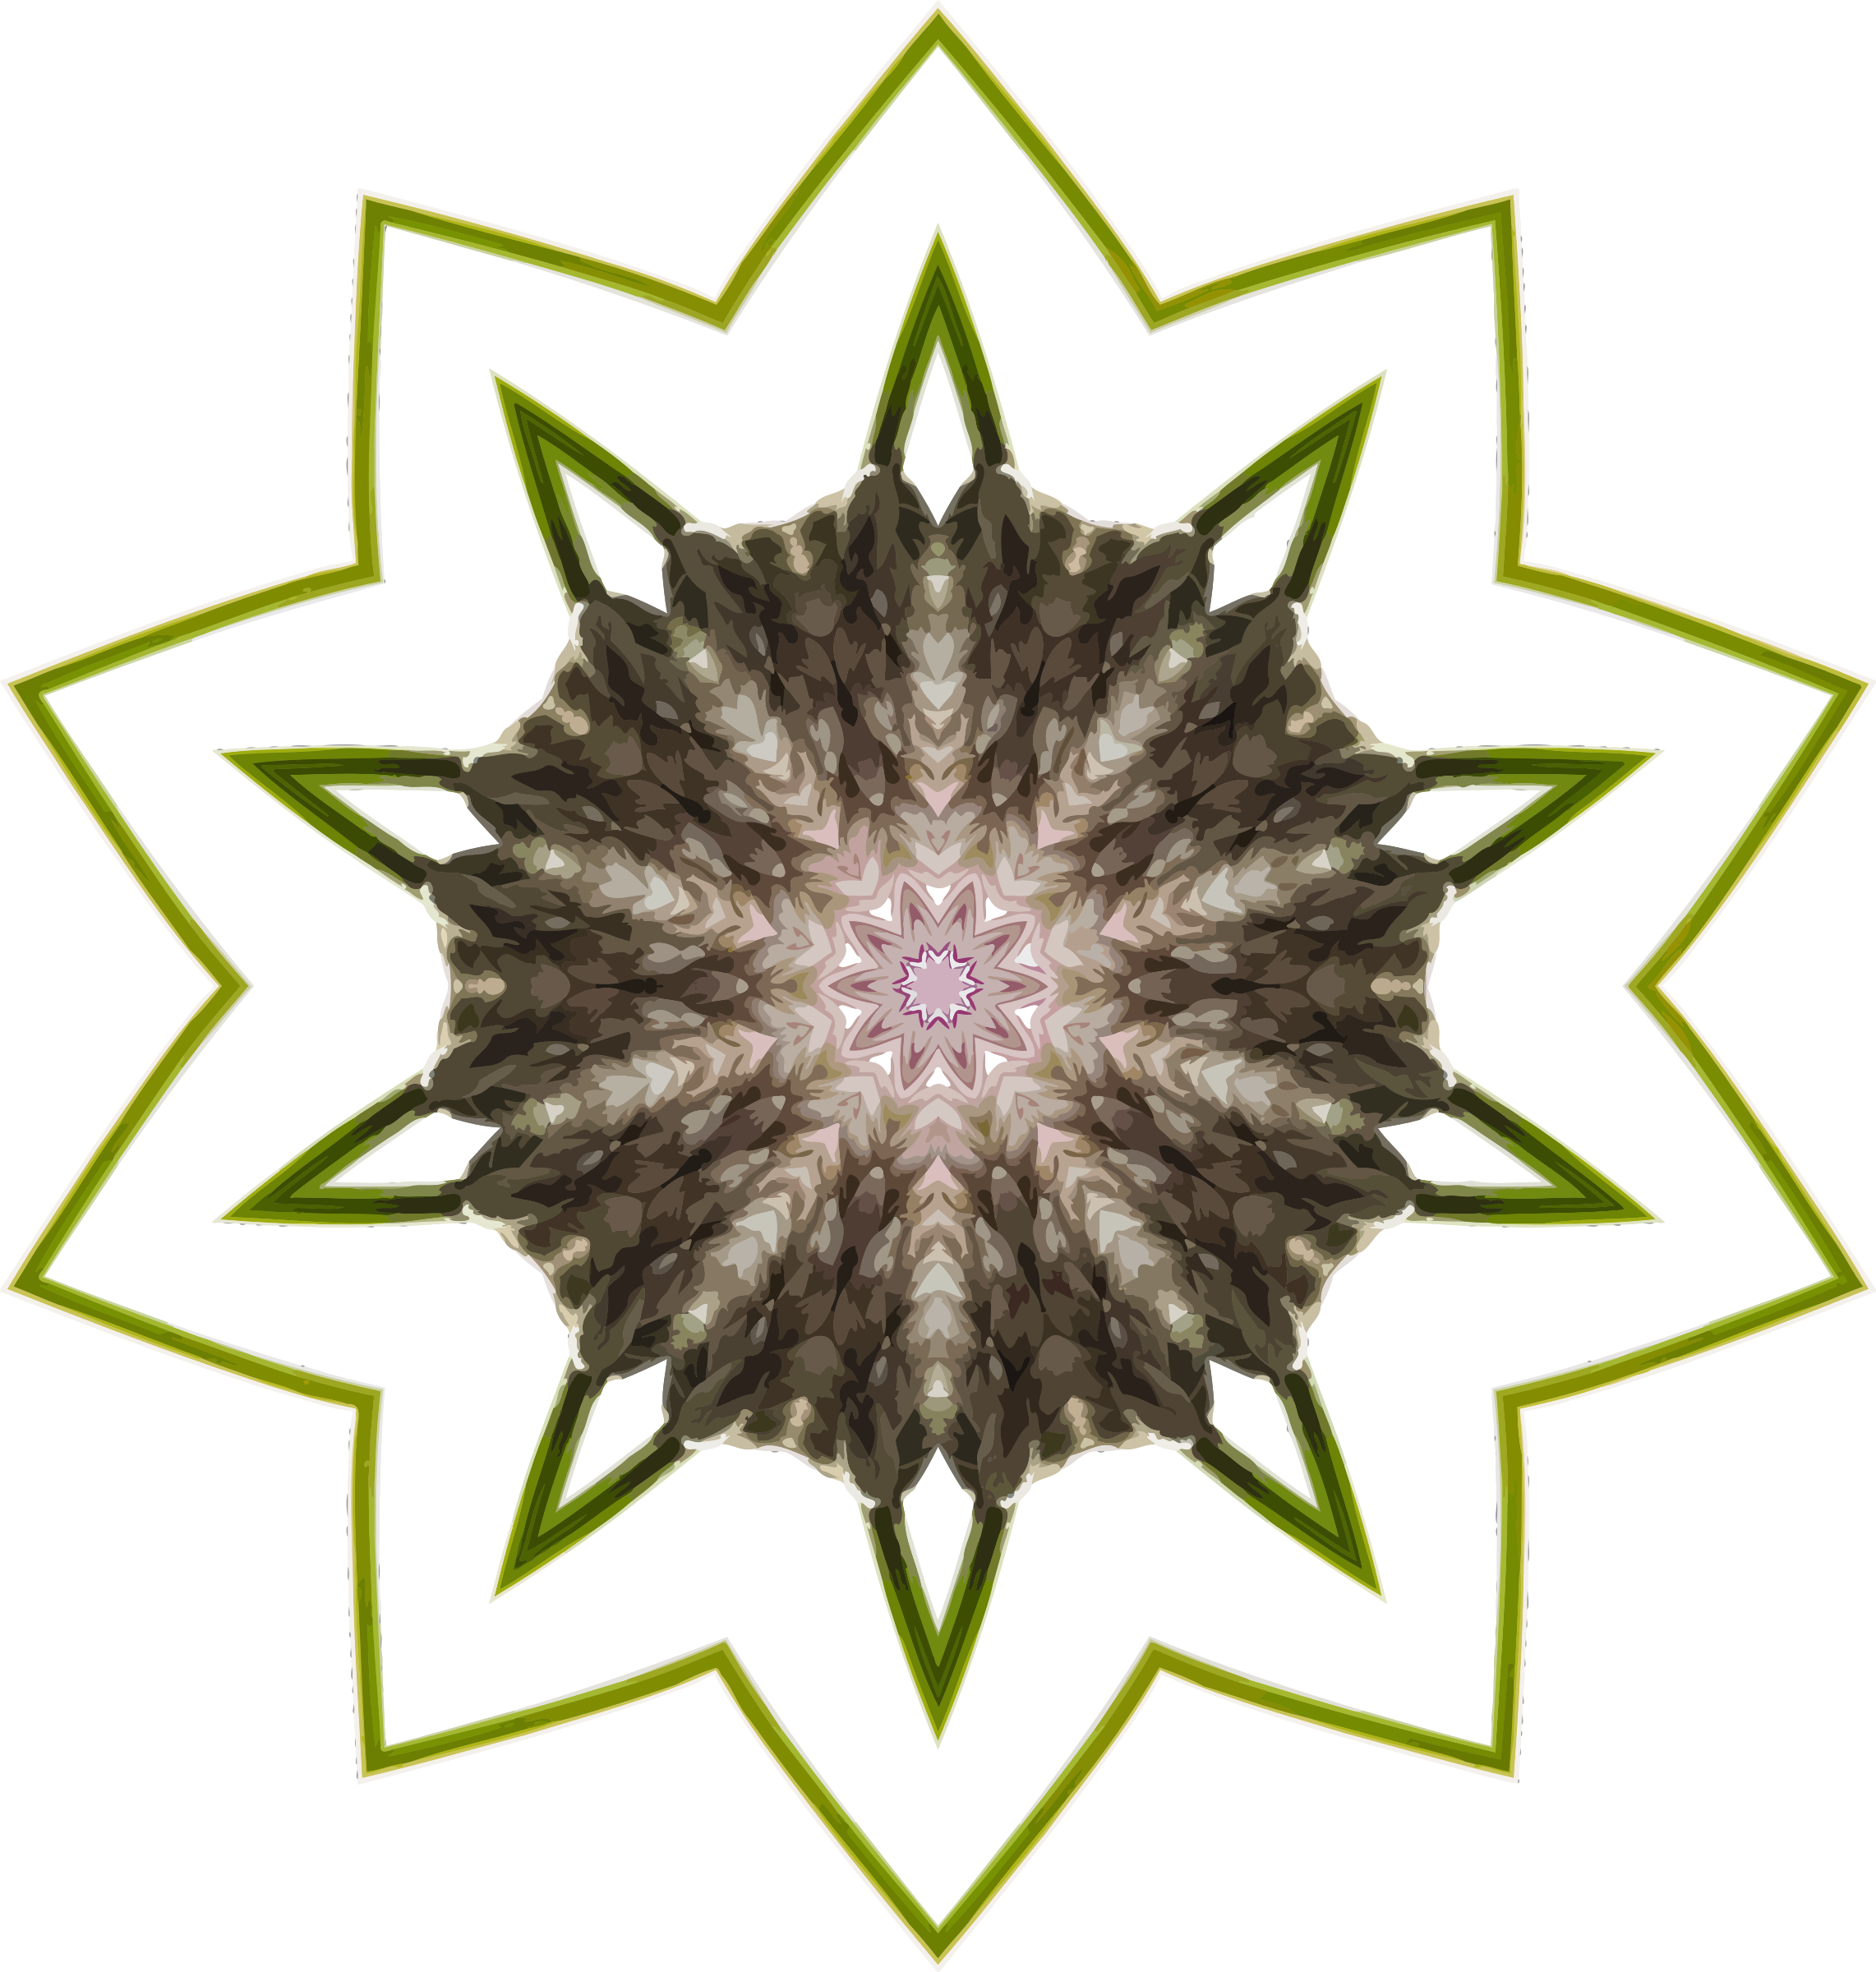 Wildflower kaleidoscope 9 by Firkin